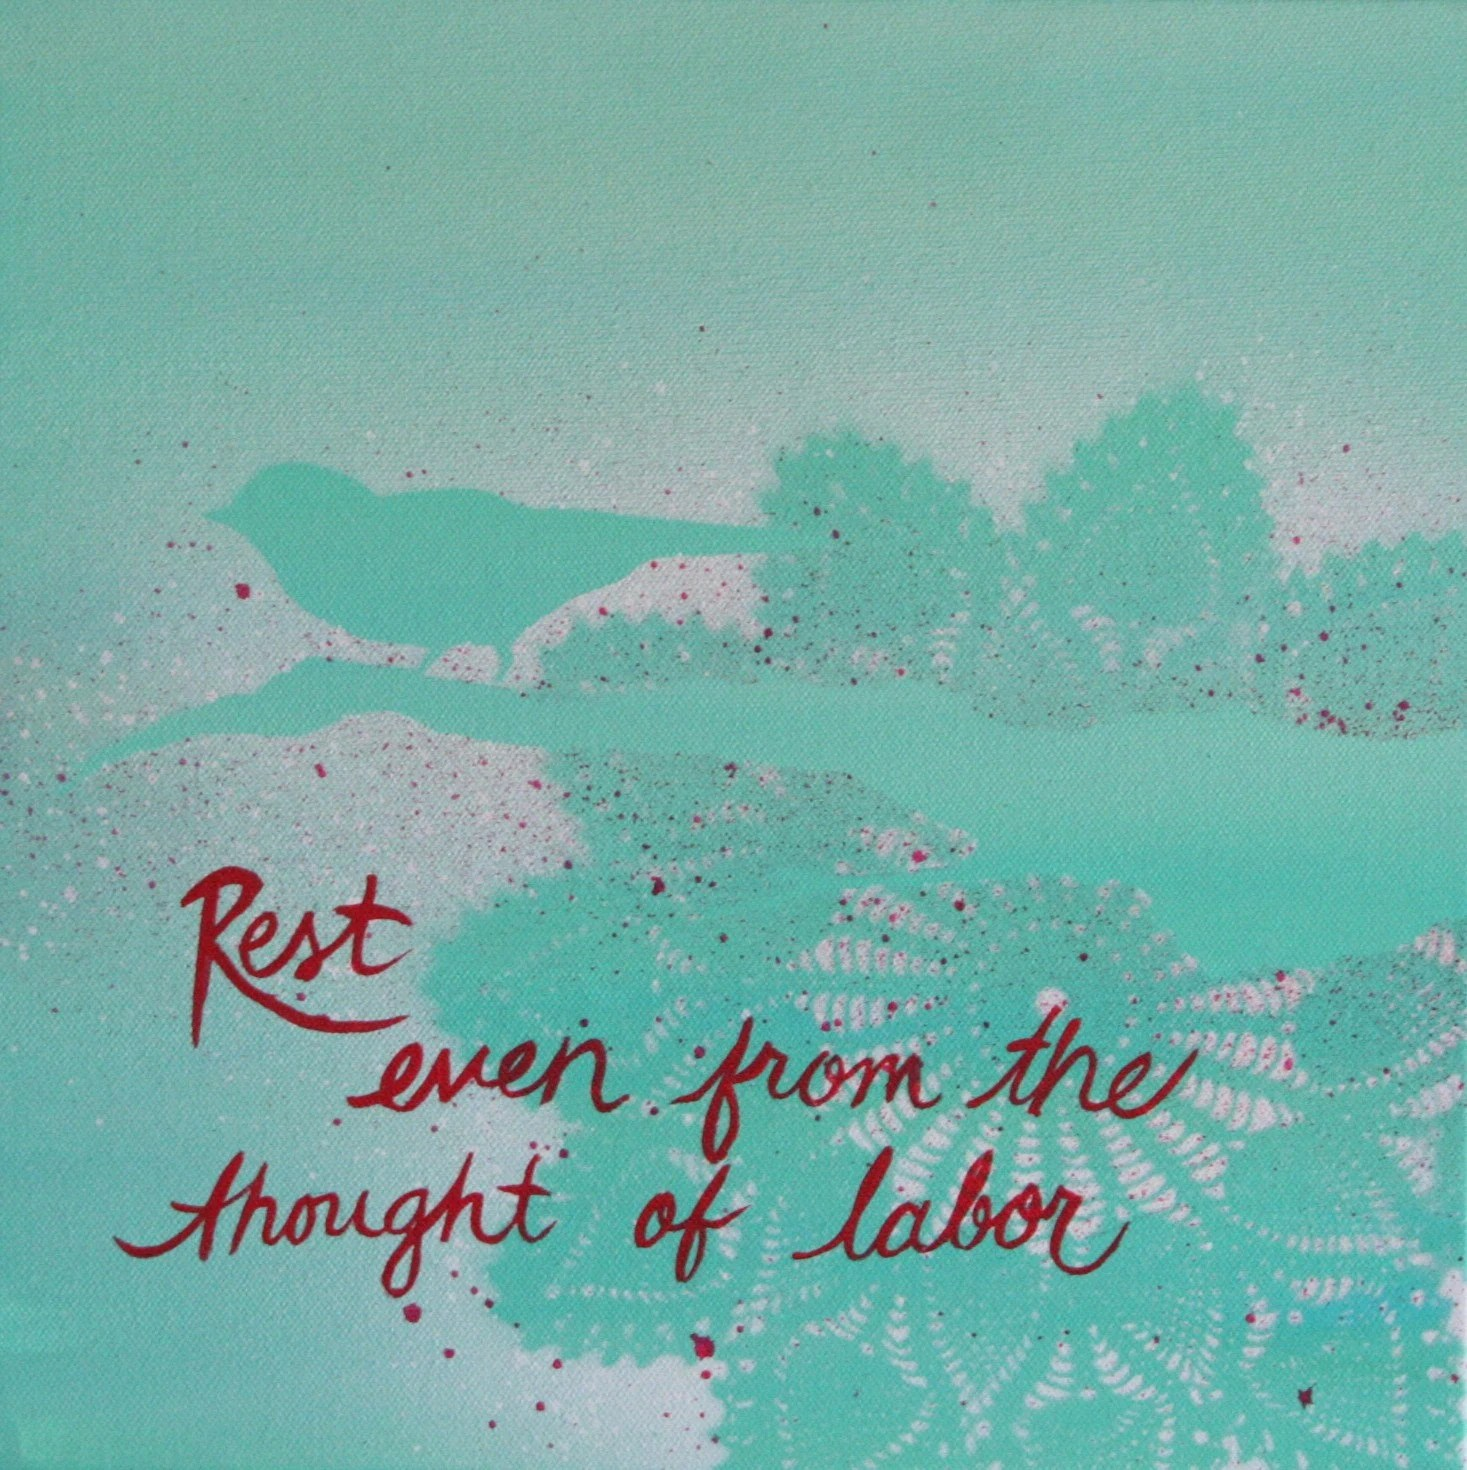 Thought of Labor I (12x12) $60